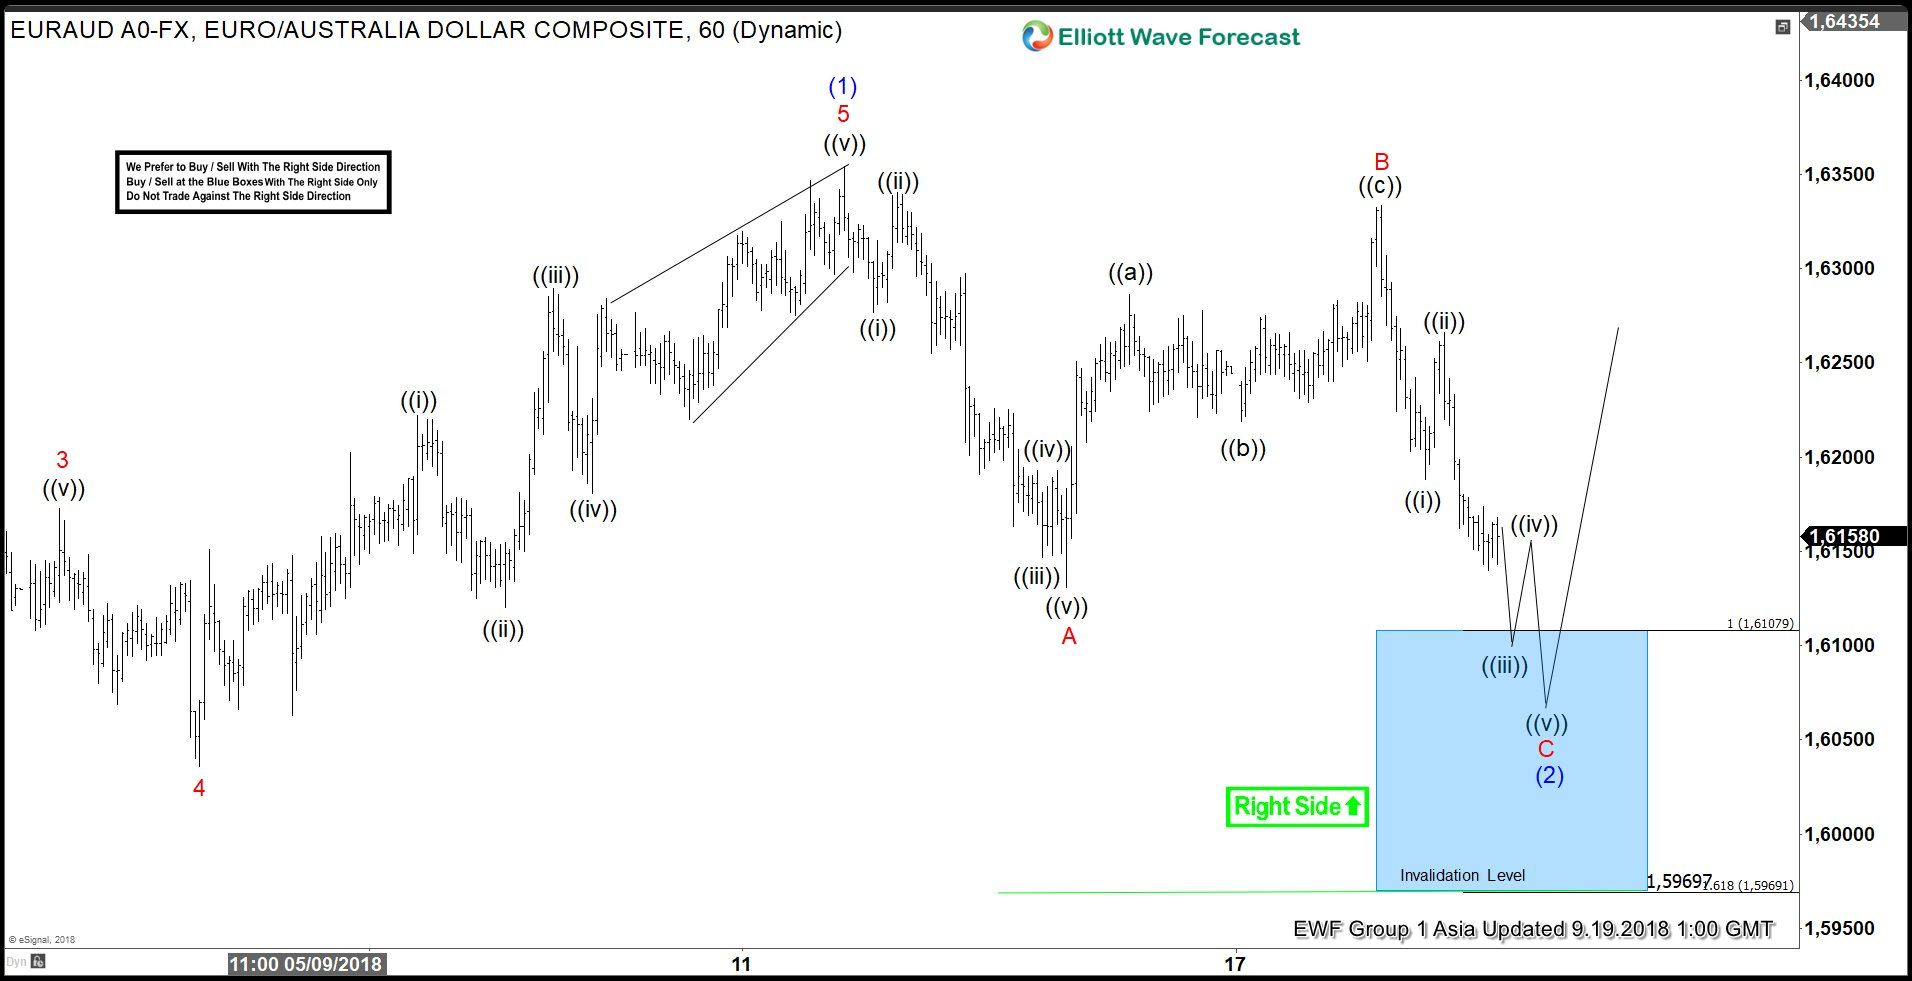 EURAUD Elliott Wave View: Reaching Support Zone